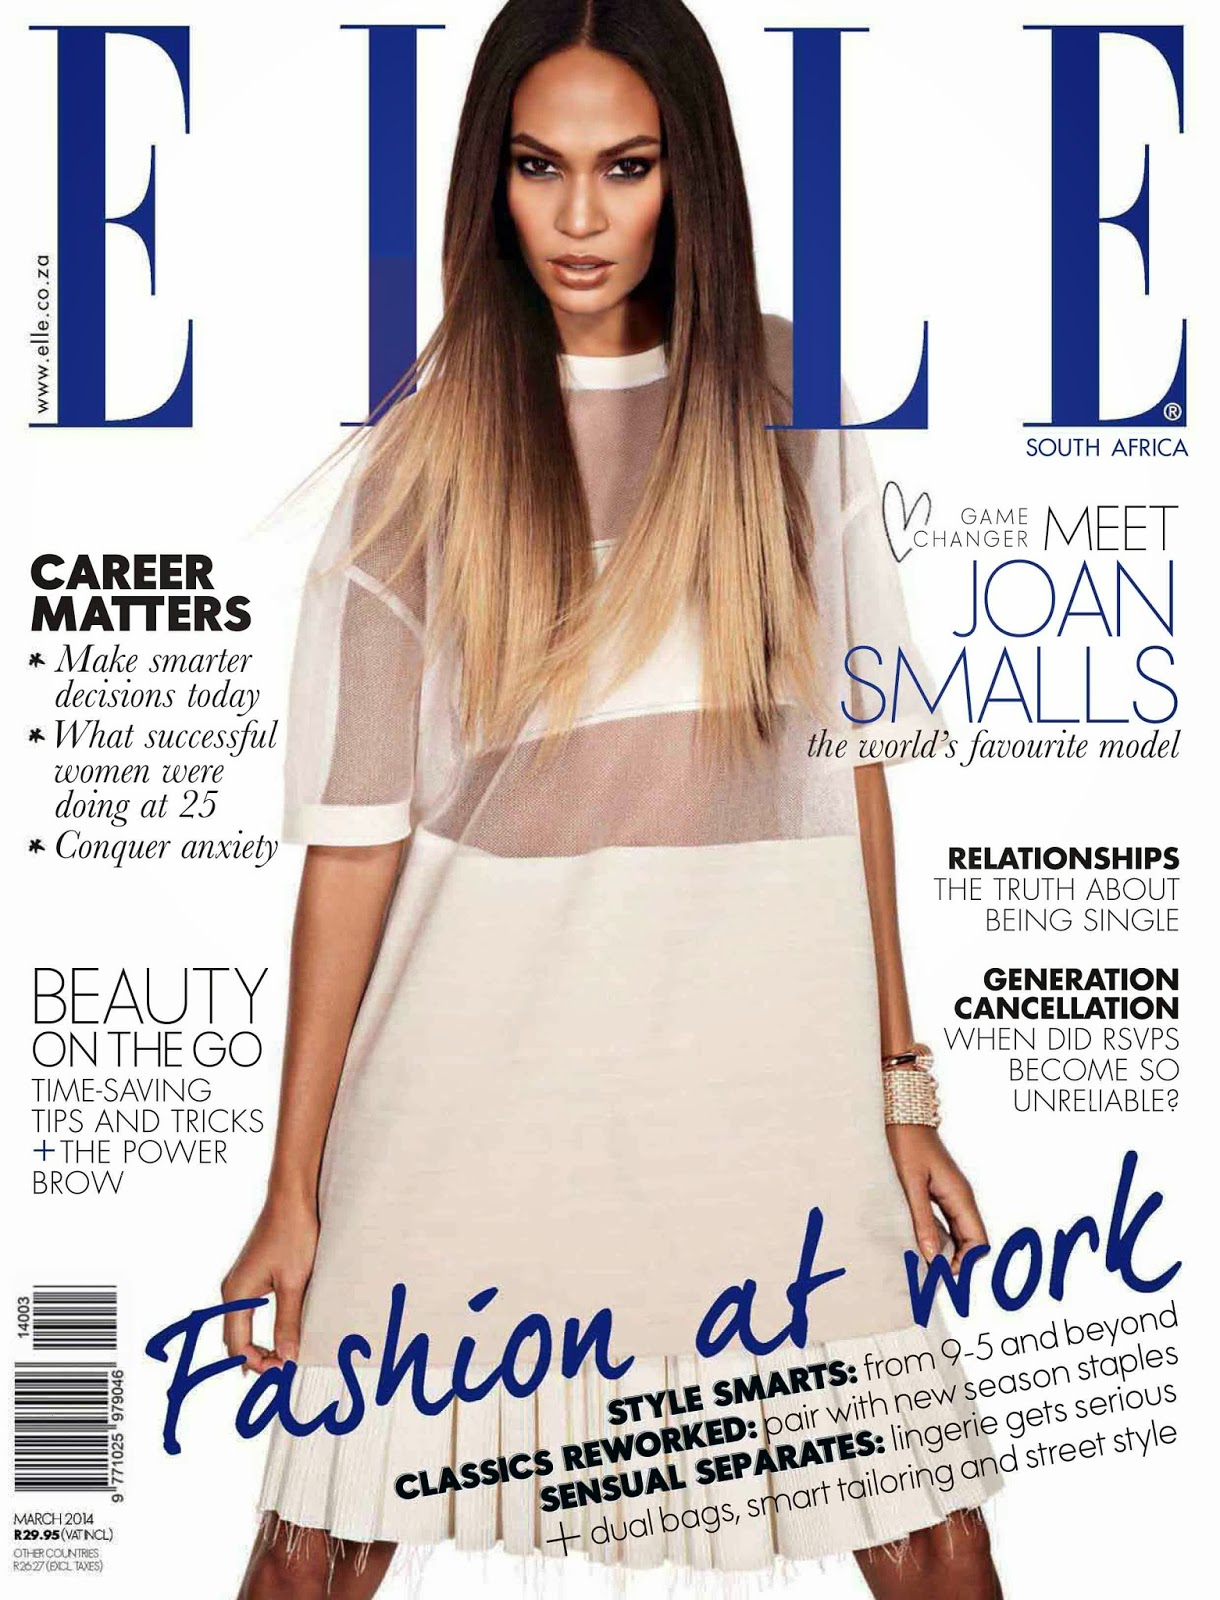 Joan Smalls Photos from Elle South Africa Magazine Cover March 2014 HQ Scans